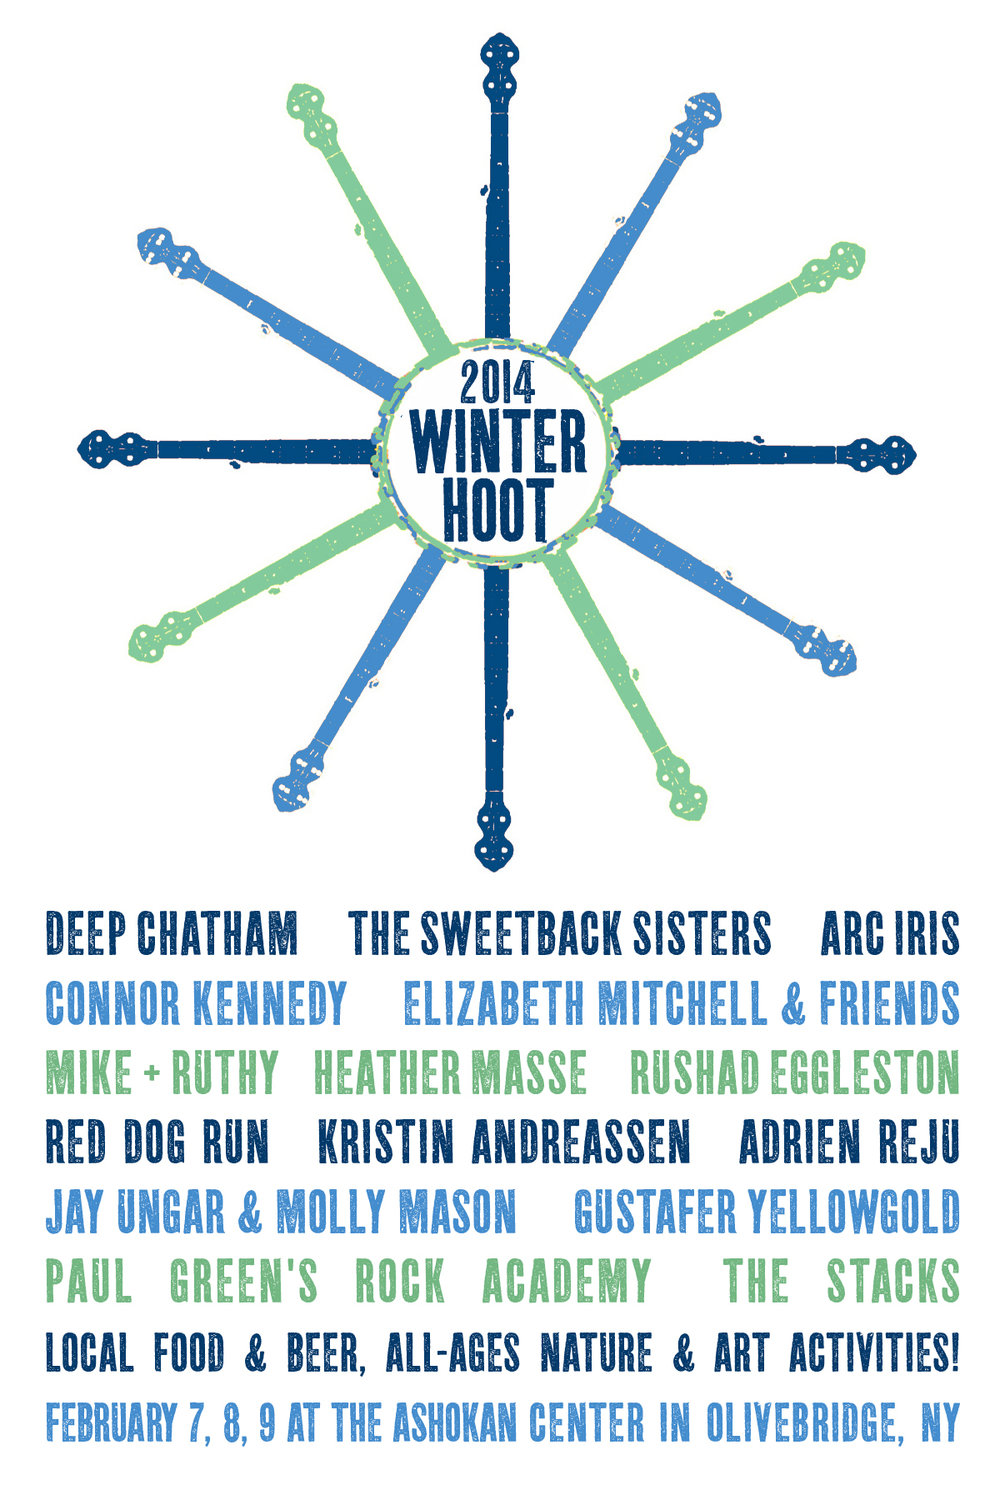 WINTER HOOT 2014